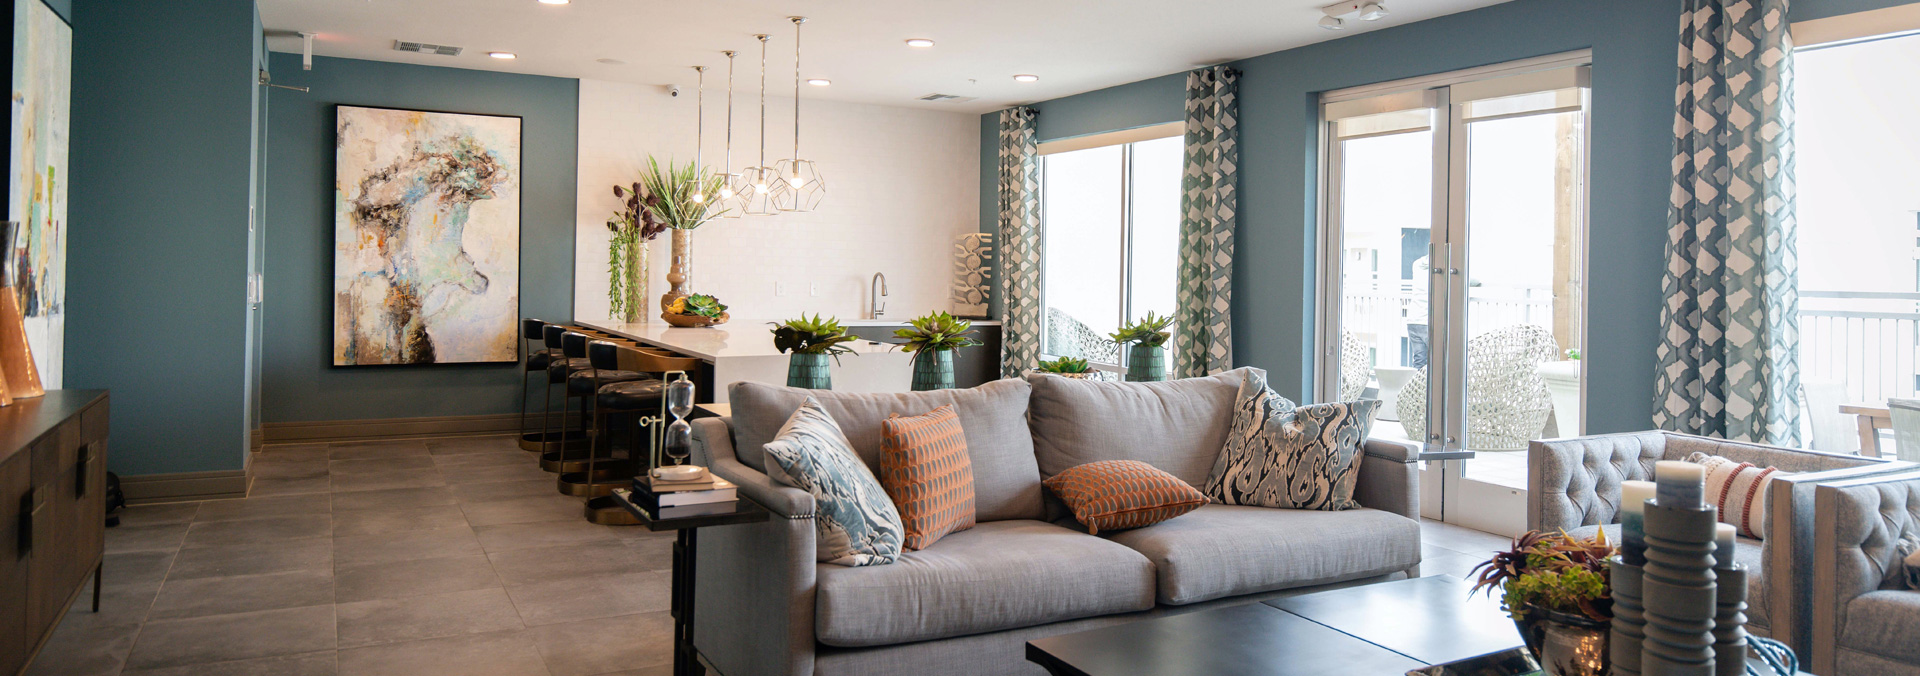 Best Decor Ideas, Rules, and Tips for Blue Interior Design